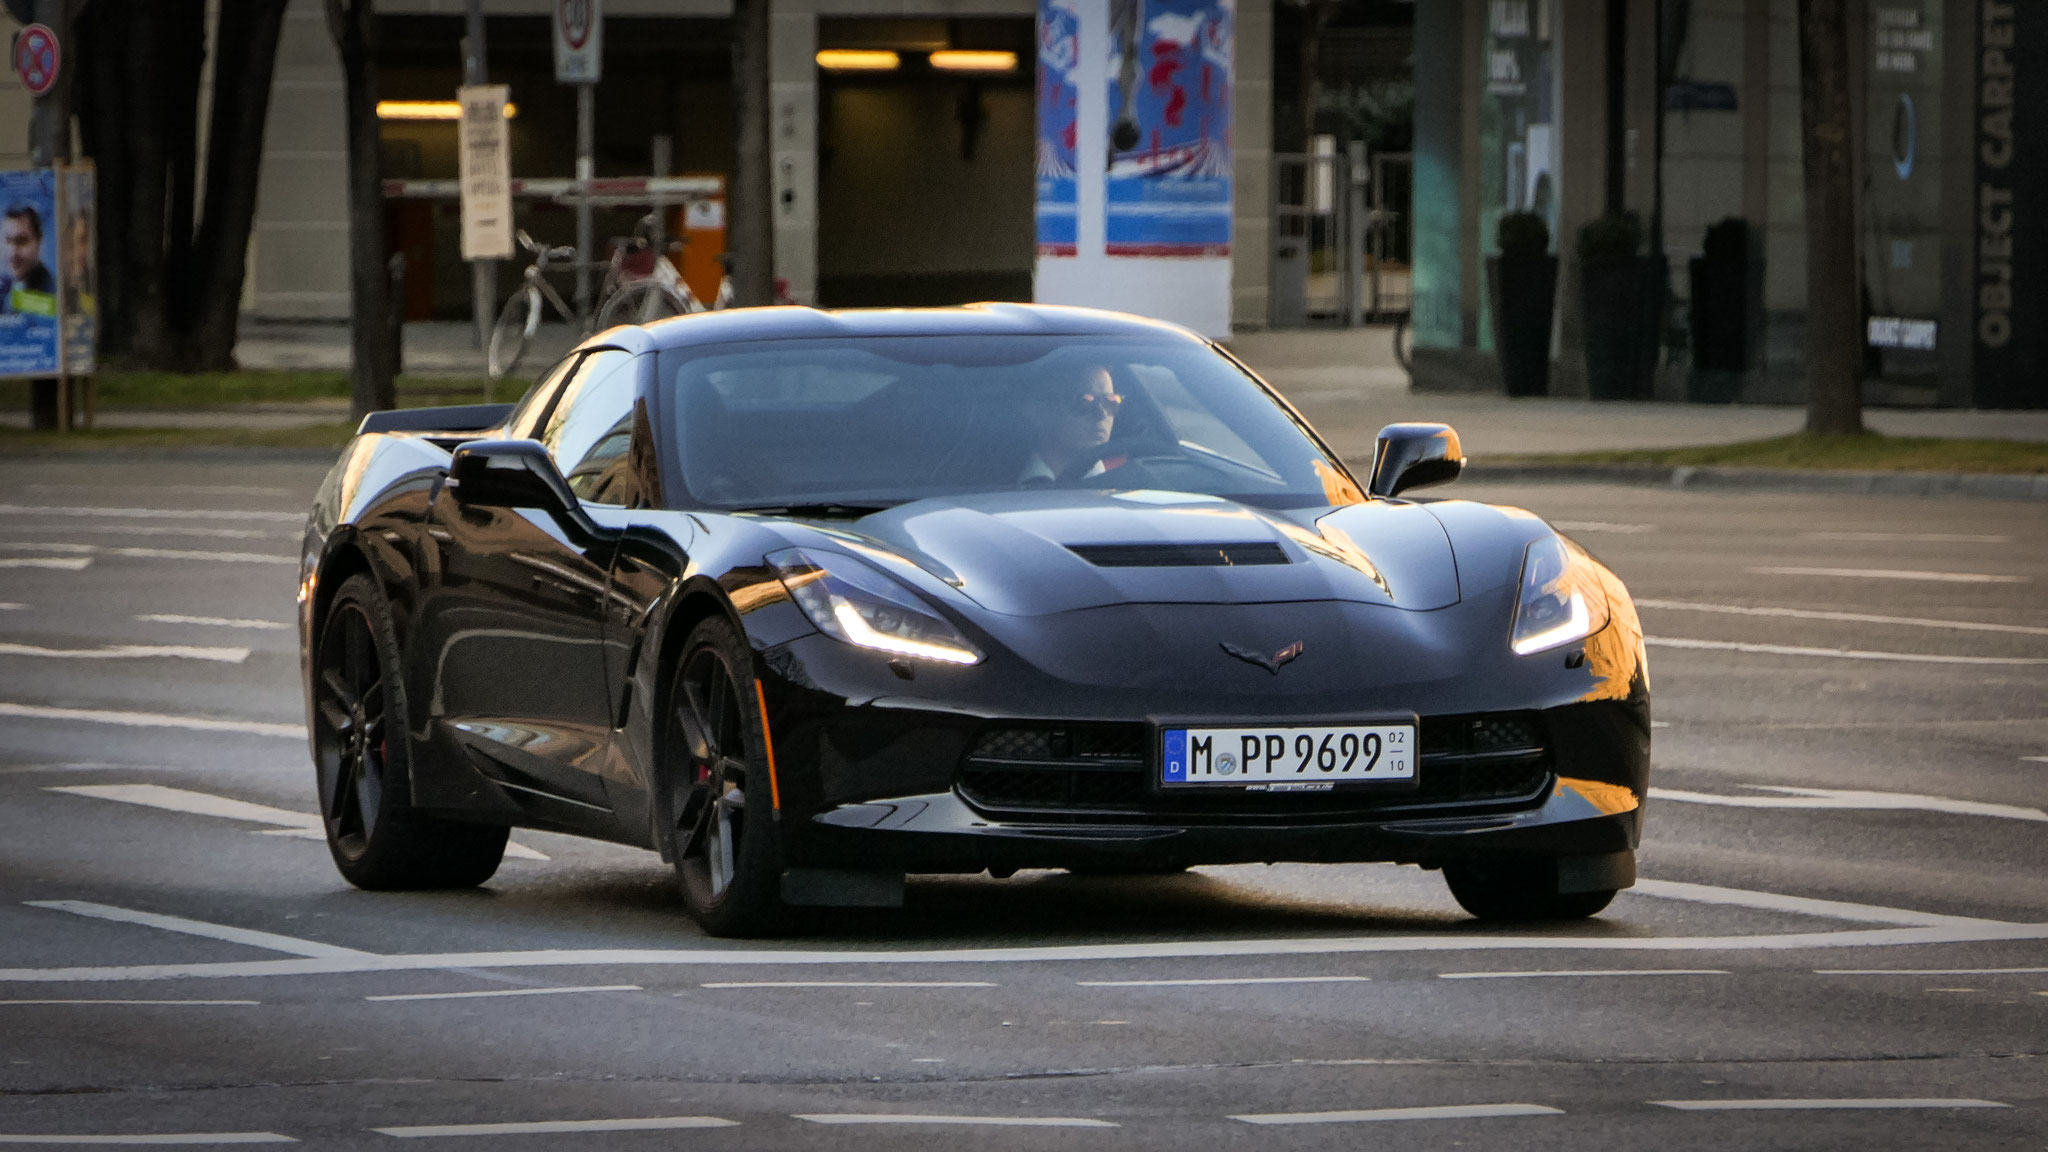 Chevrolet Corvette C7 Stingray - M-PP-9699